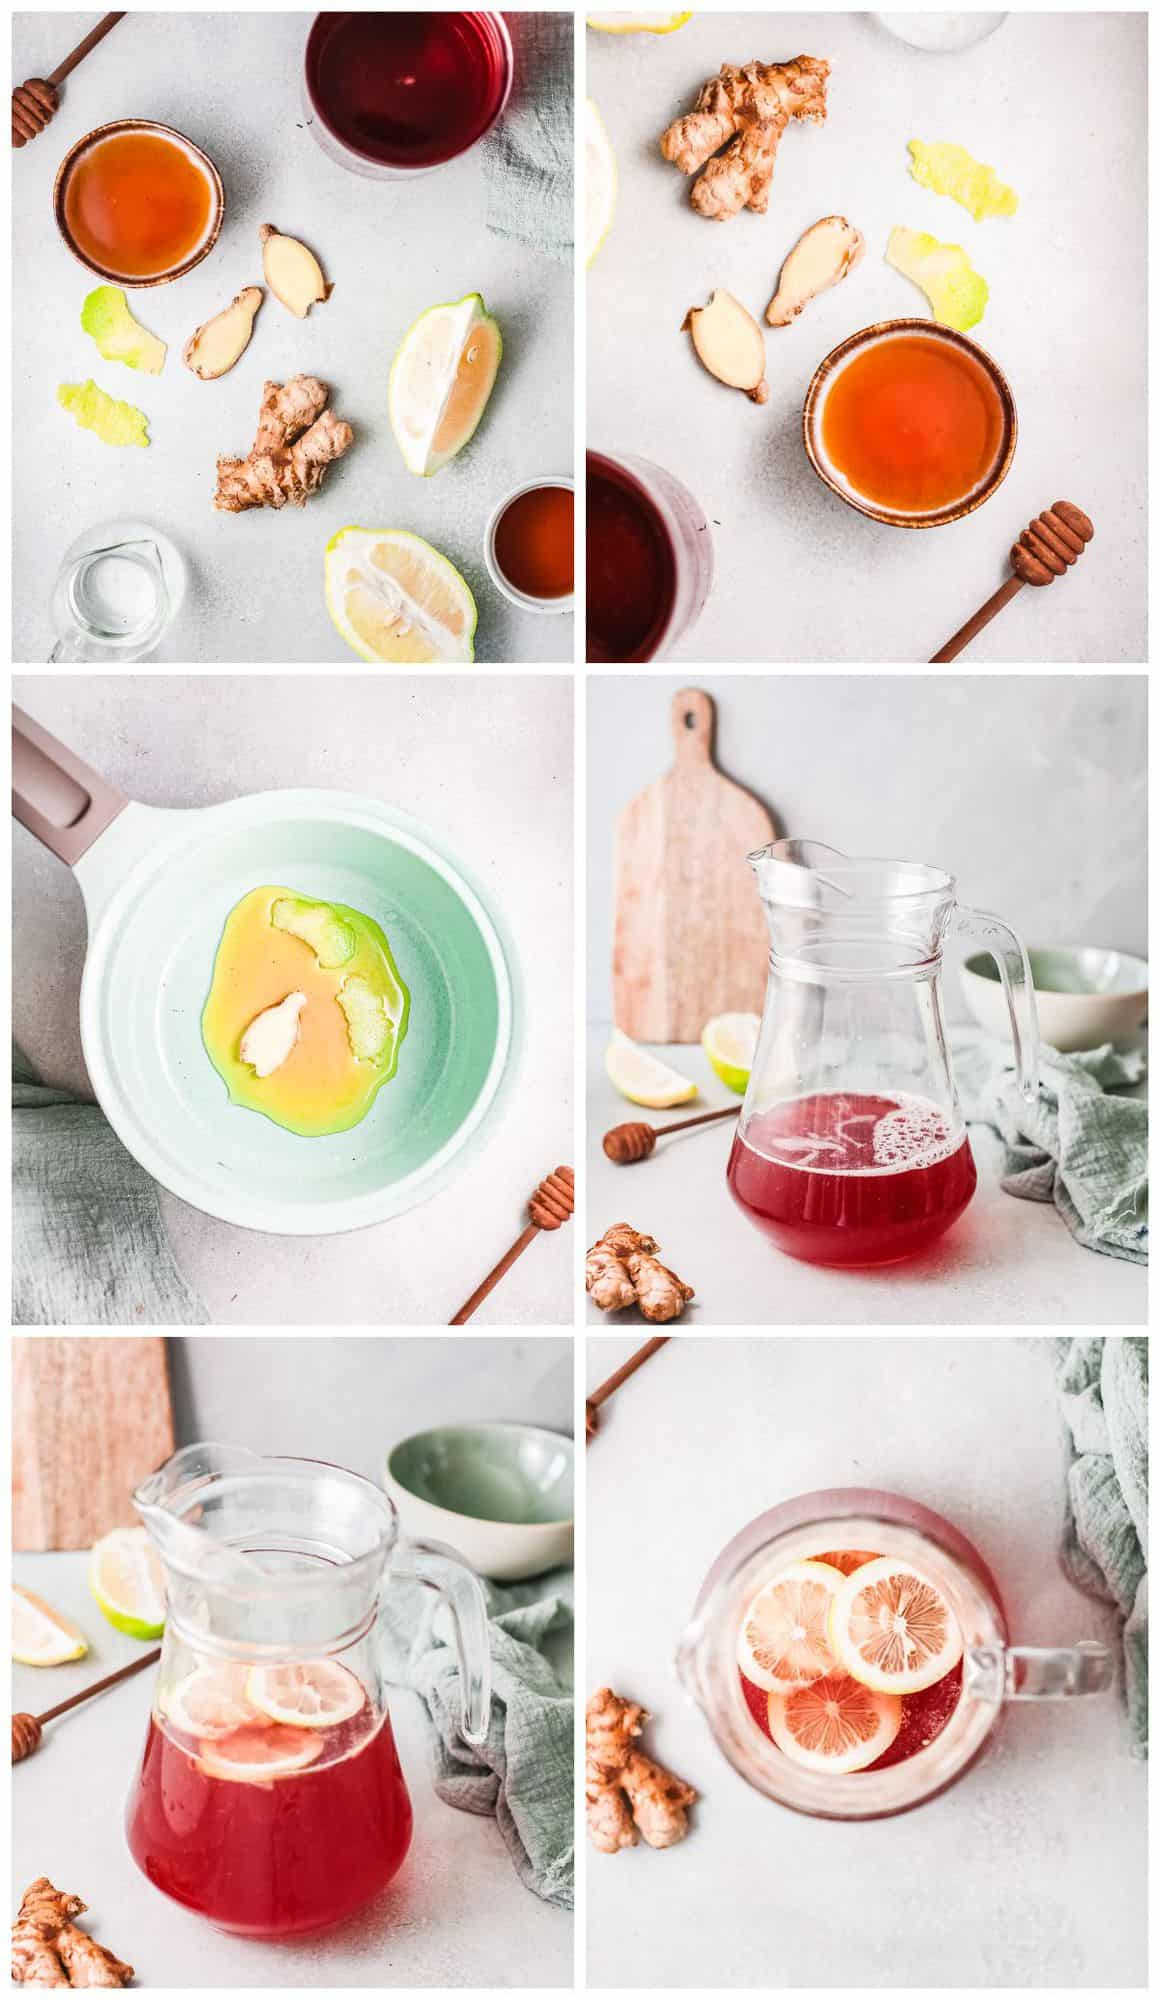 step by step photos for making cranberry margaritas